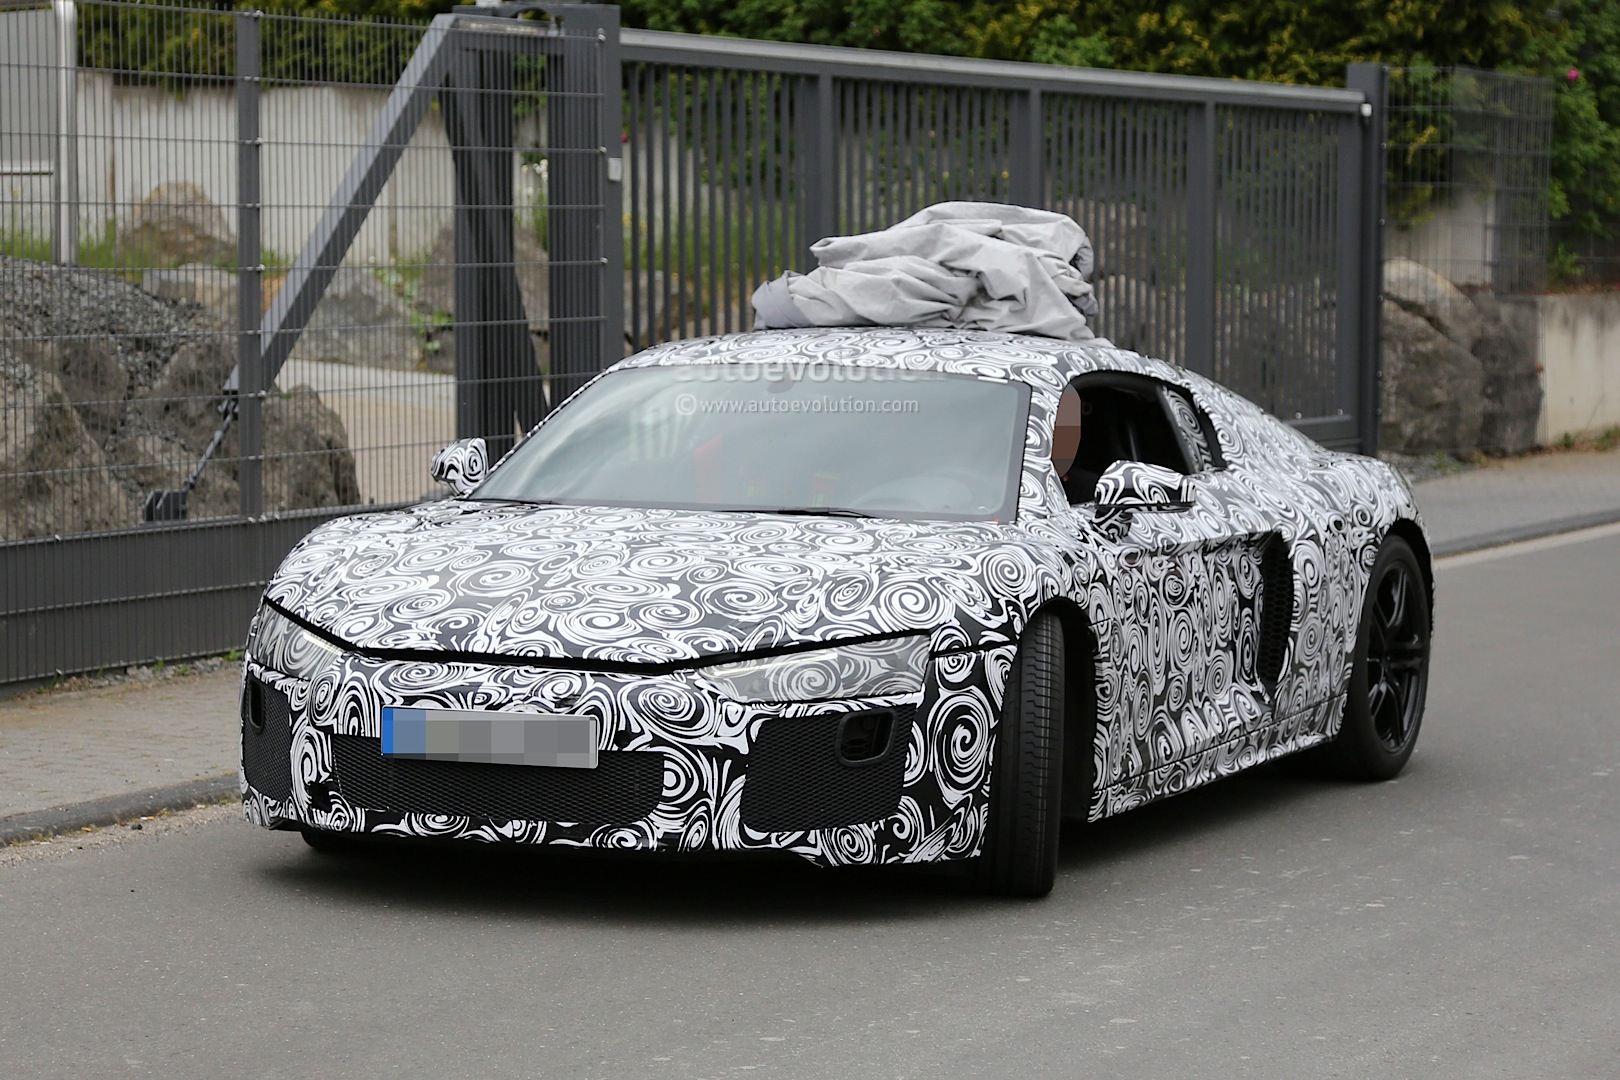 2015 - [Audi] R8 II / R8 II Spider - Page 2 2016-audi-r8-new-led-taillights-spied-in-detail_1